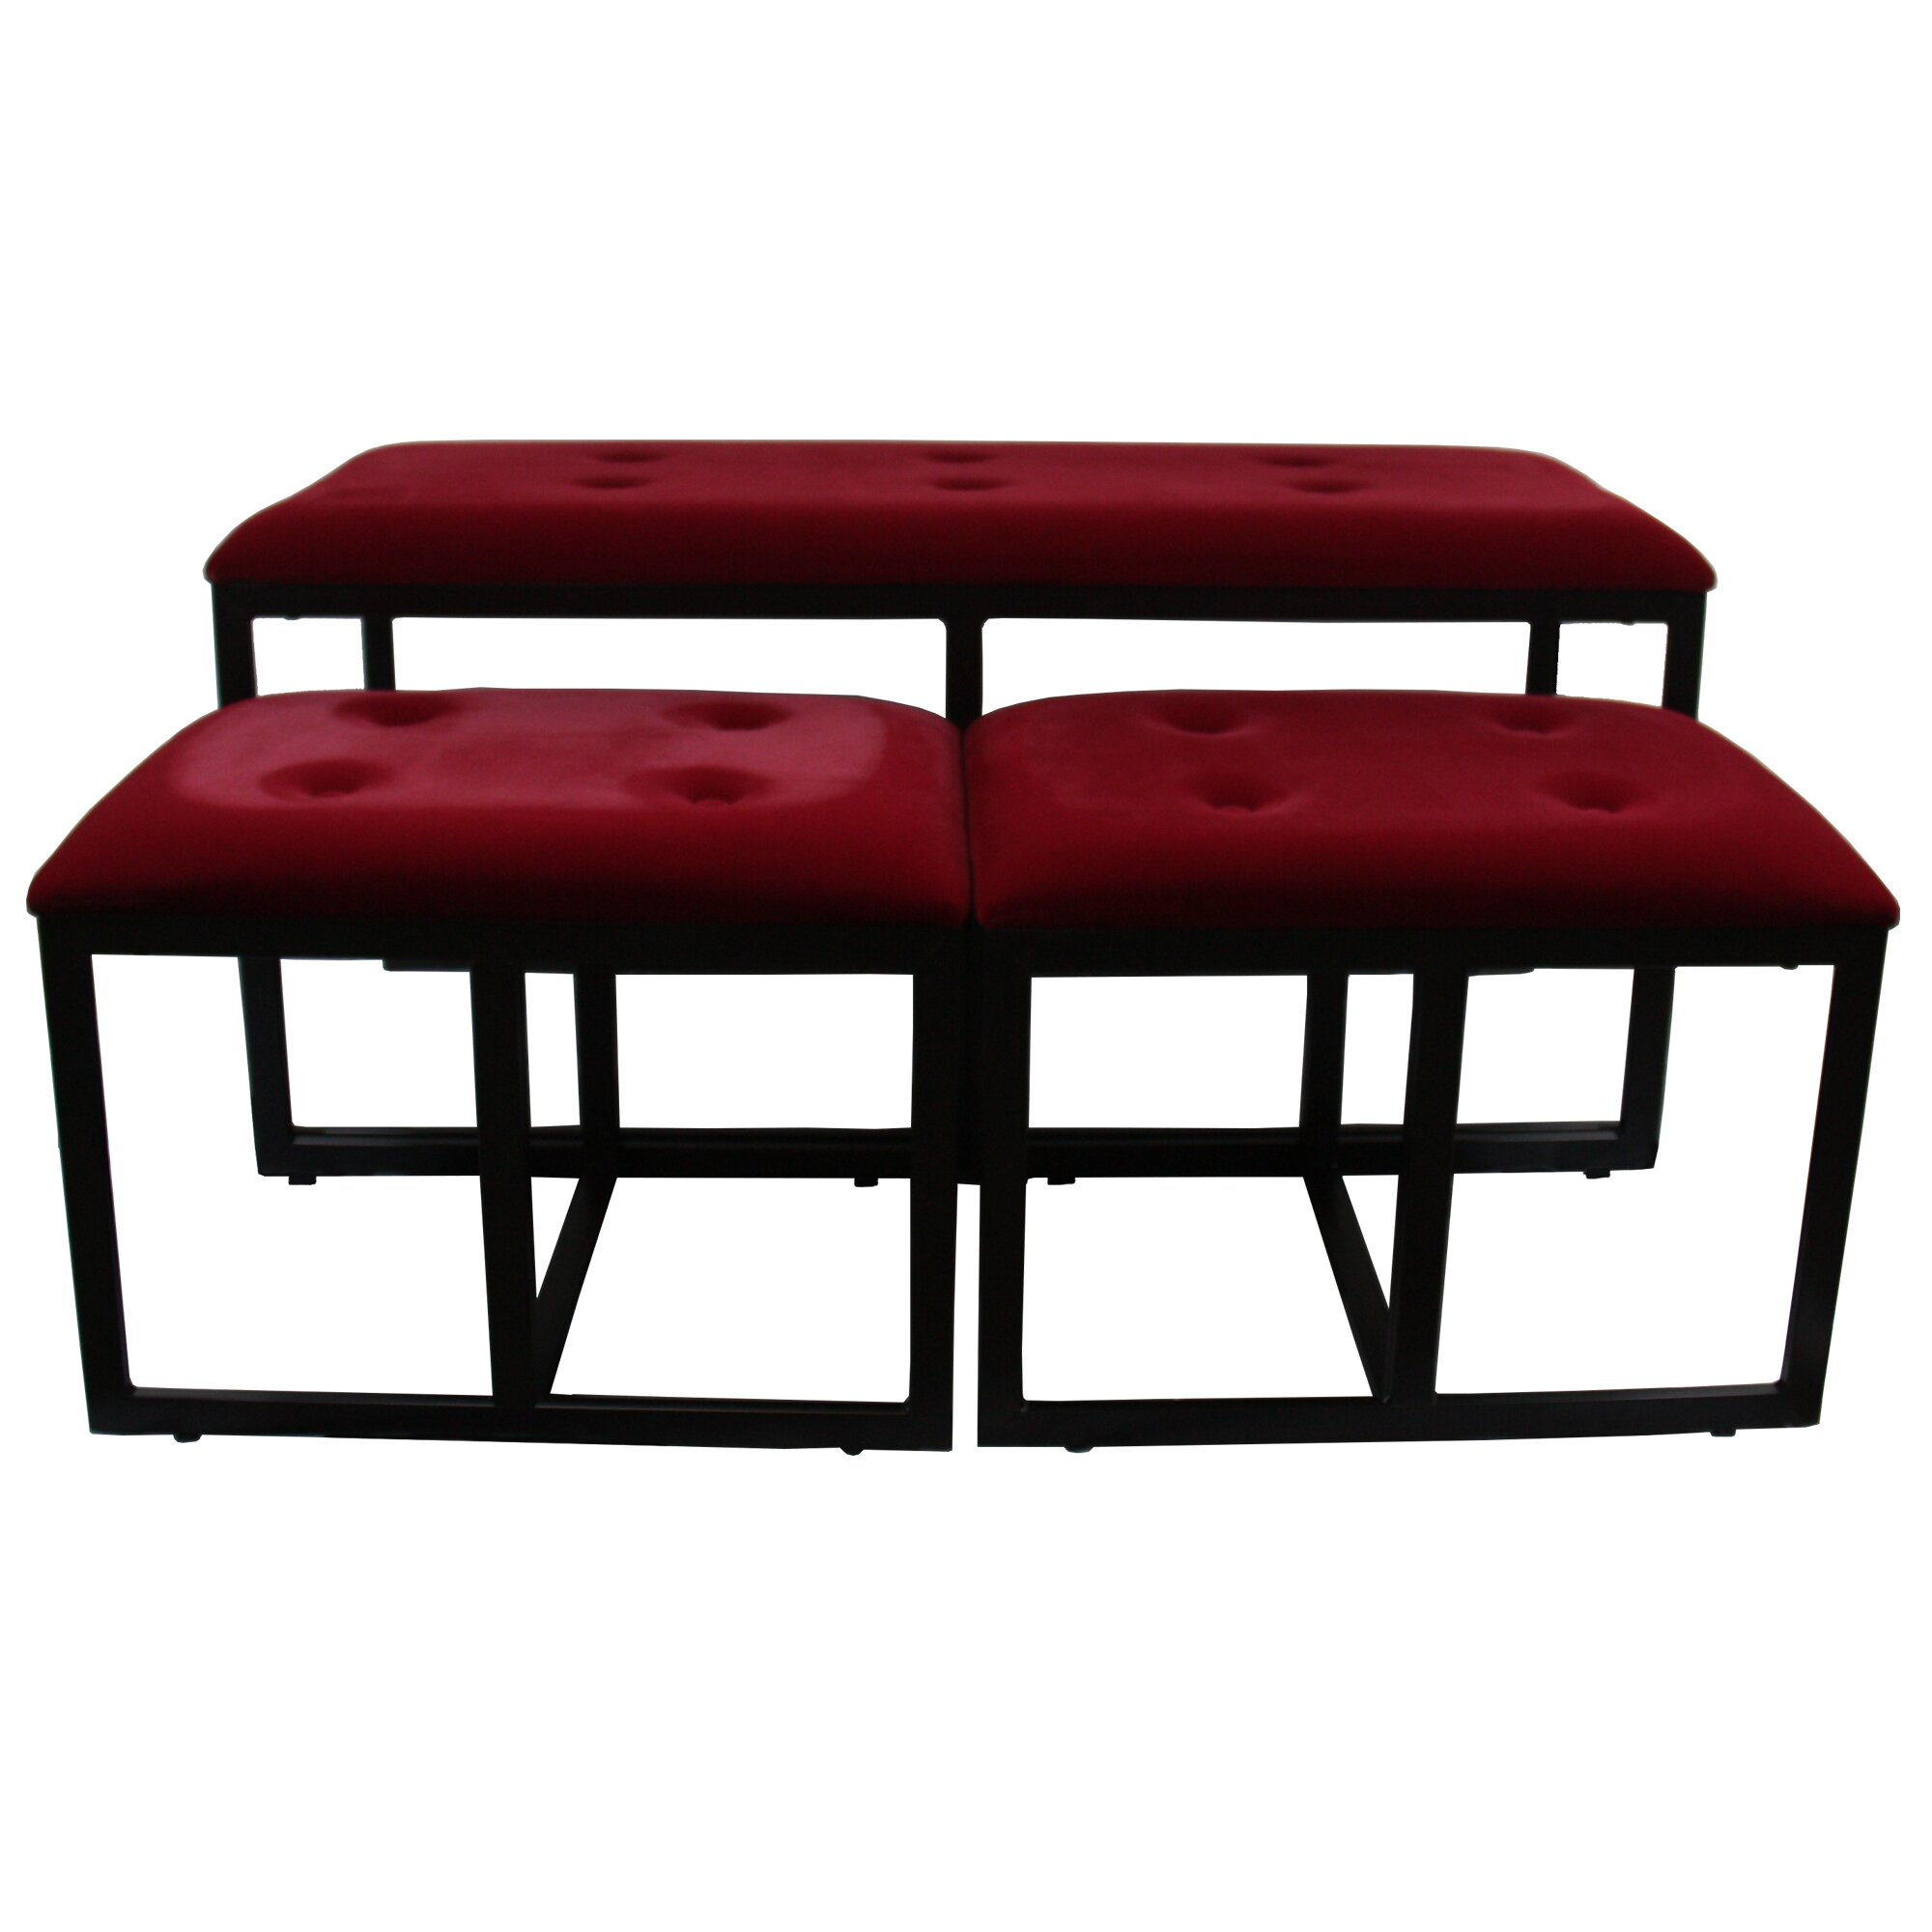 Furniture Accent Furniture Upholstered Benches ORE Furniture SKU